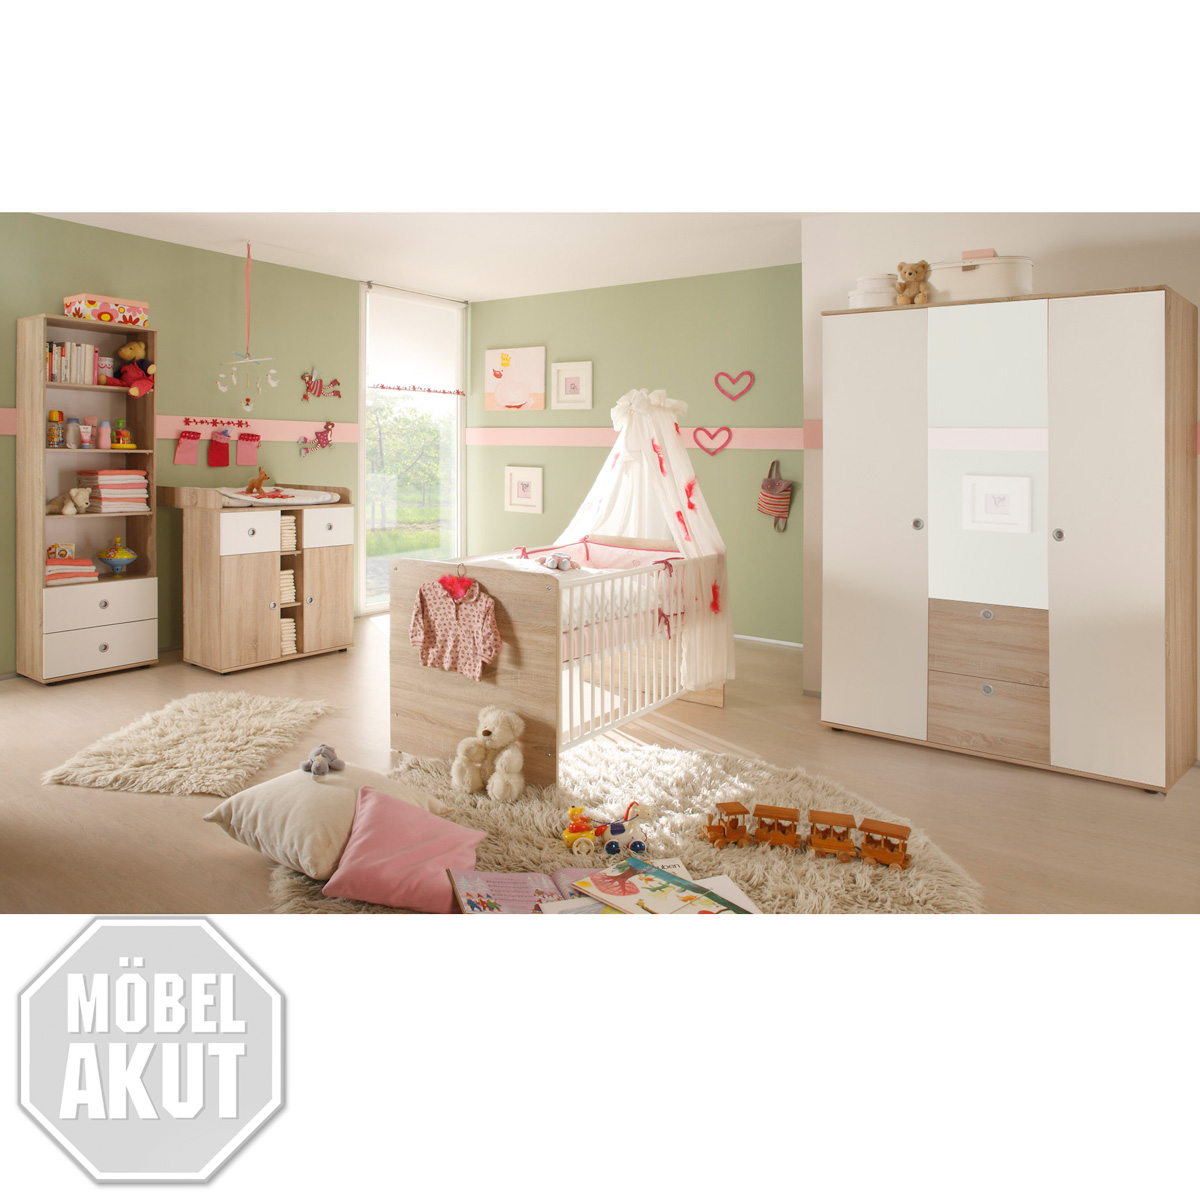 4 tlg babyzimmer winnie kinderzimmer sonoma eiche s gerau wei spiegel ebay. Black Bedroom Furniture Sets. Home Design Ideas